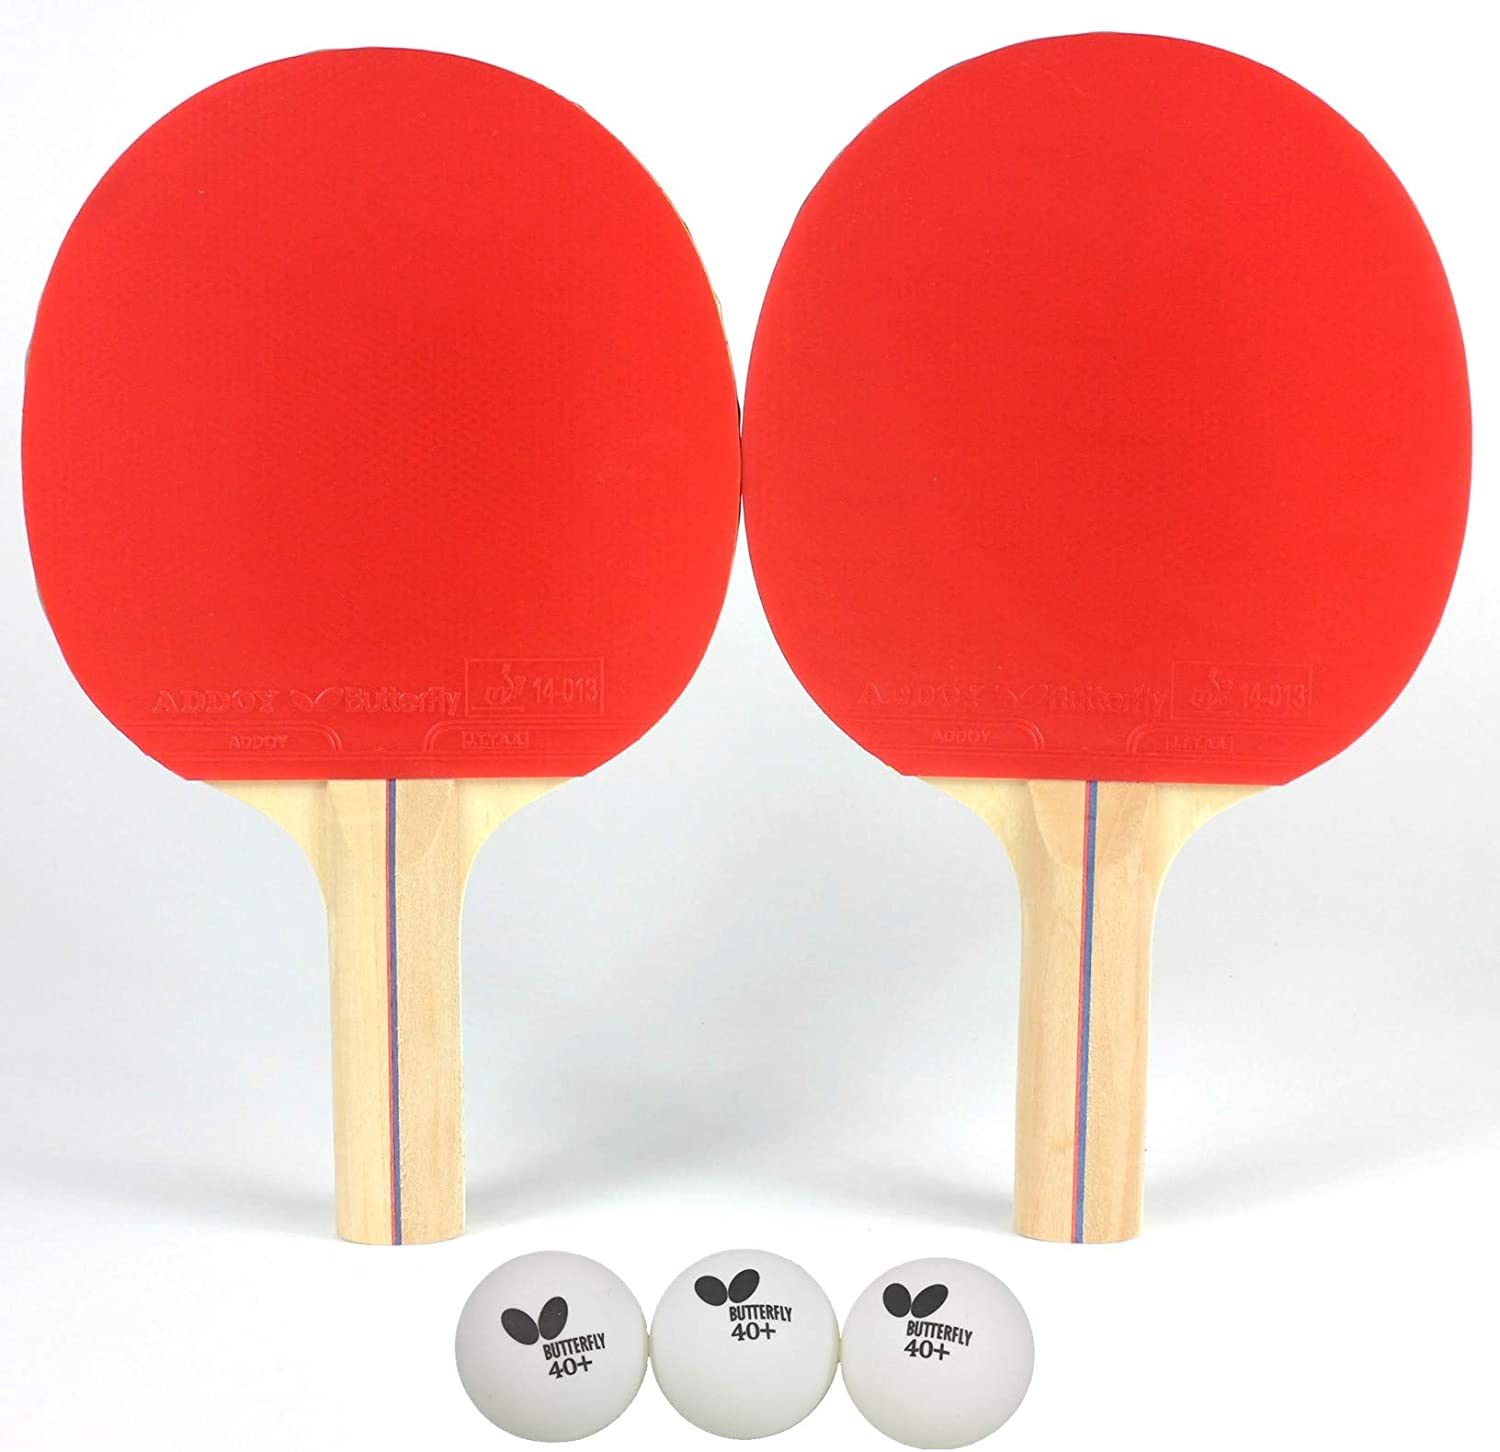 Butterfly RDJ Player Ping Pong Paddle Set – Includes Ping Pong Rackets and Ping Pong Balls – Choose Ping Pong Paddle Set of 2 or 4 – Table Tennis Racket Set : Sports & Outdoors